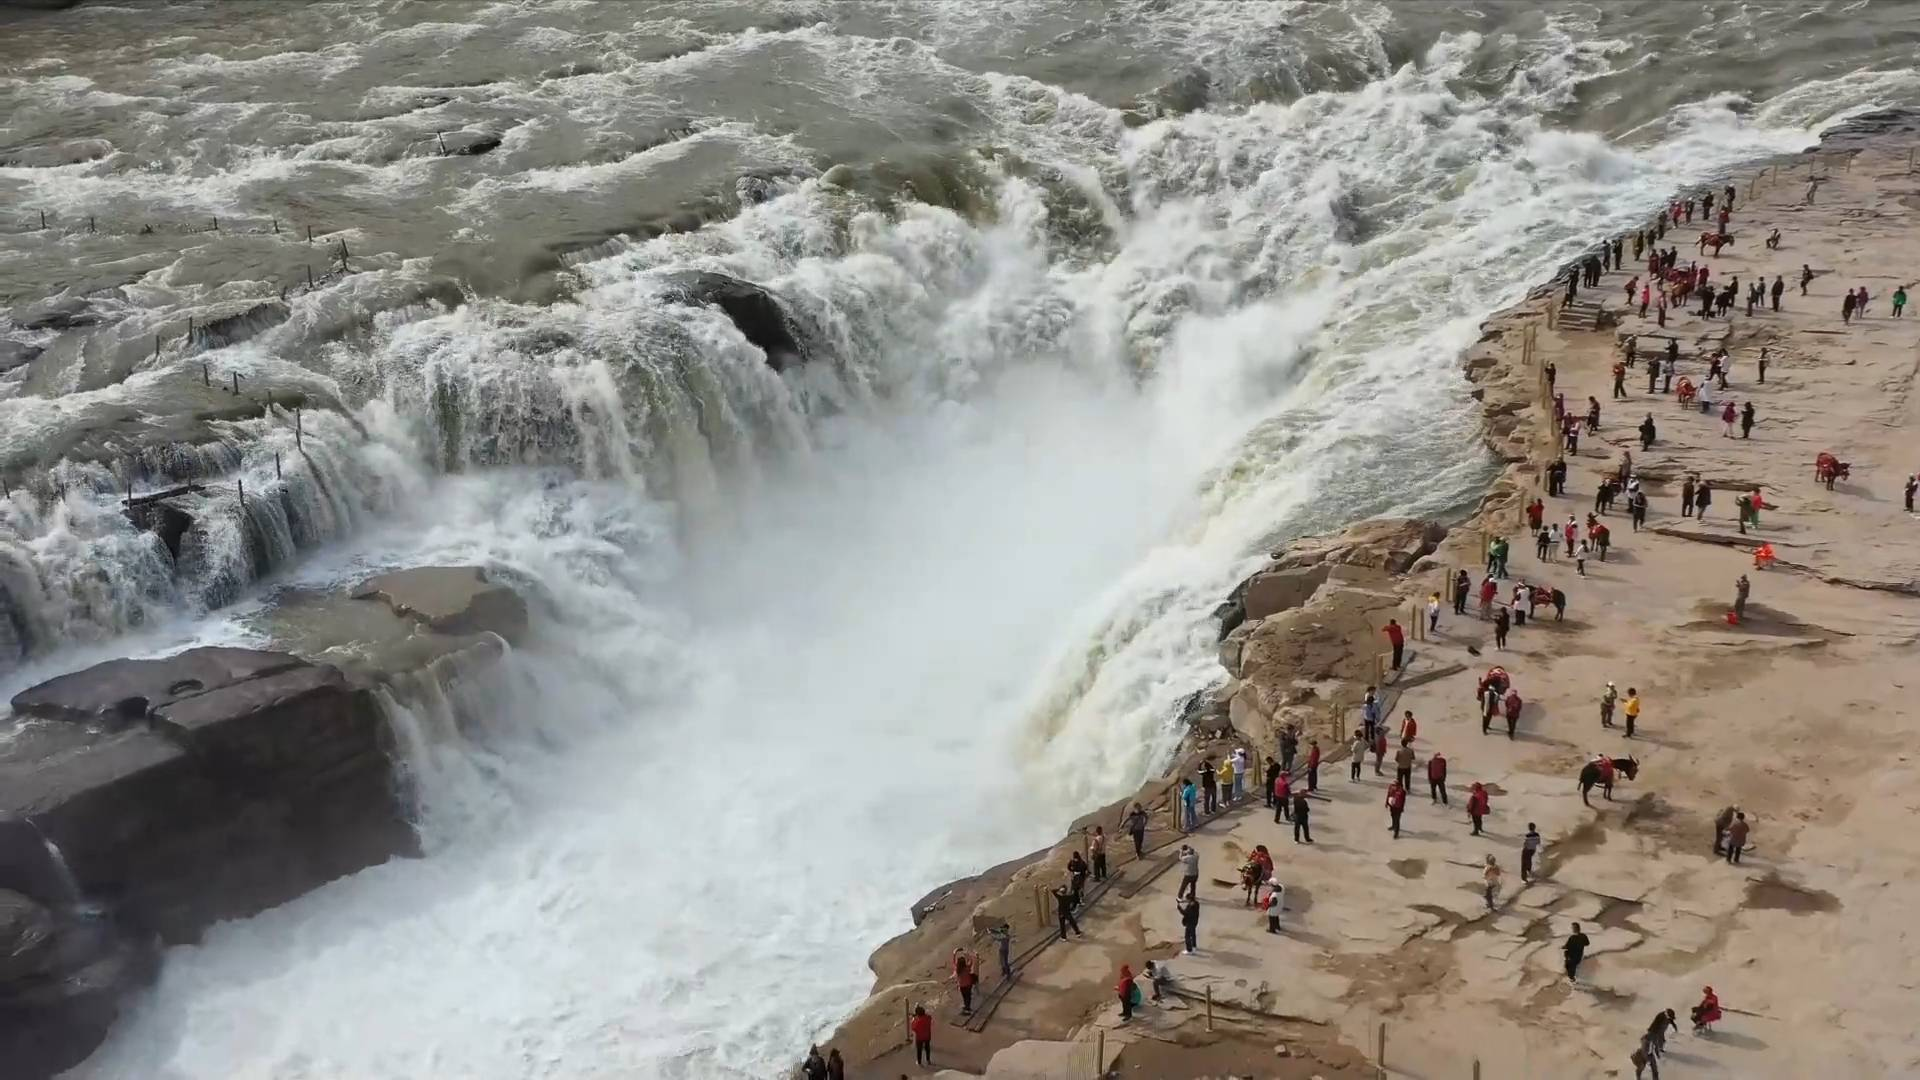 GLOBALink | Famous waterfall in NW China draws tourists with improved clarity